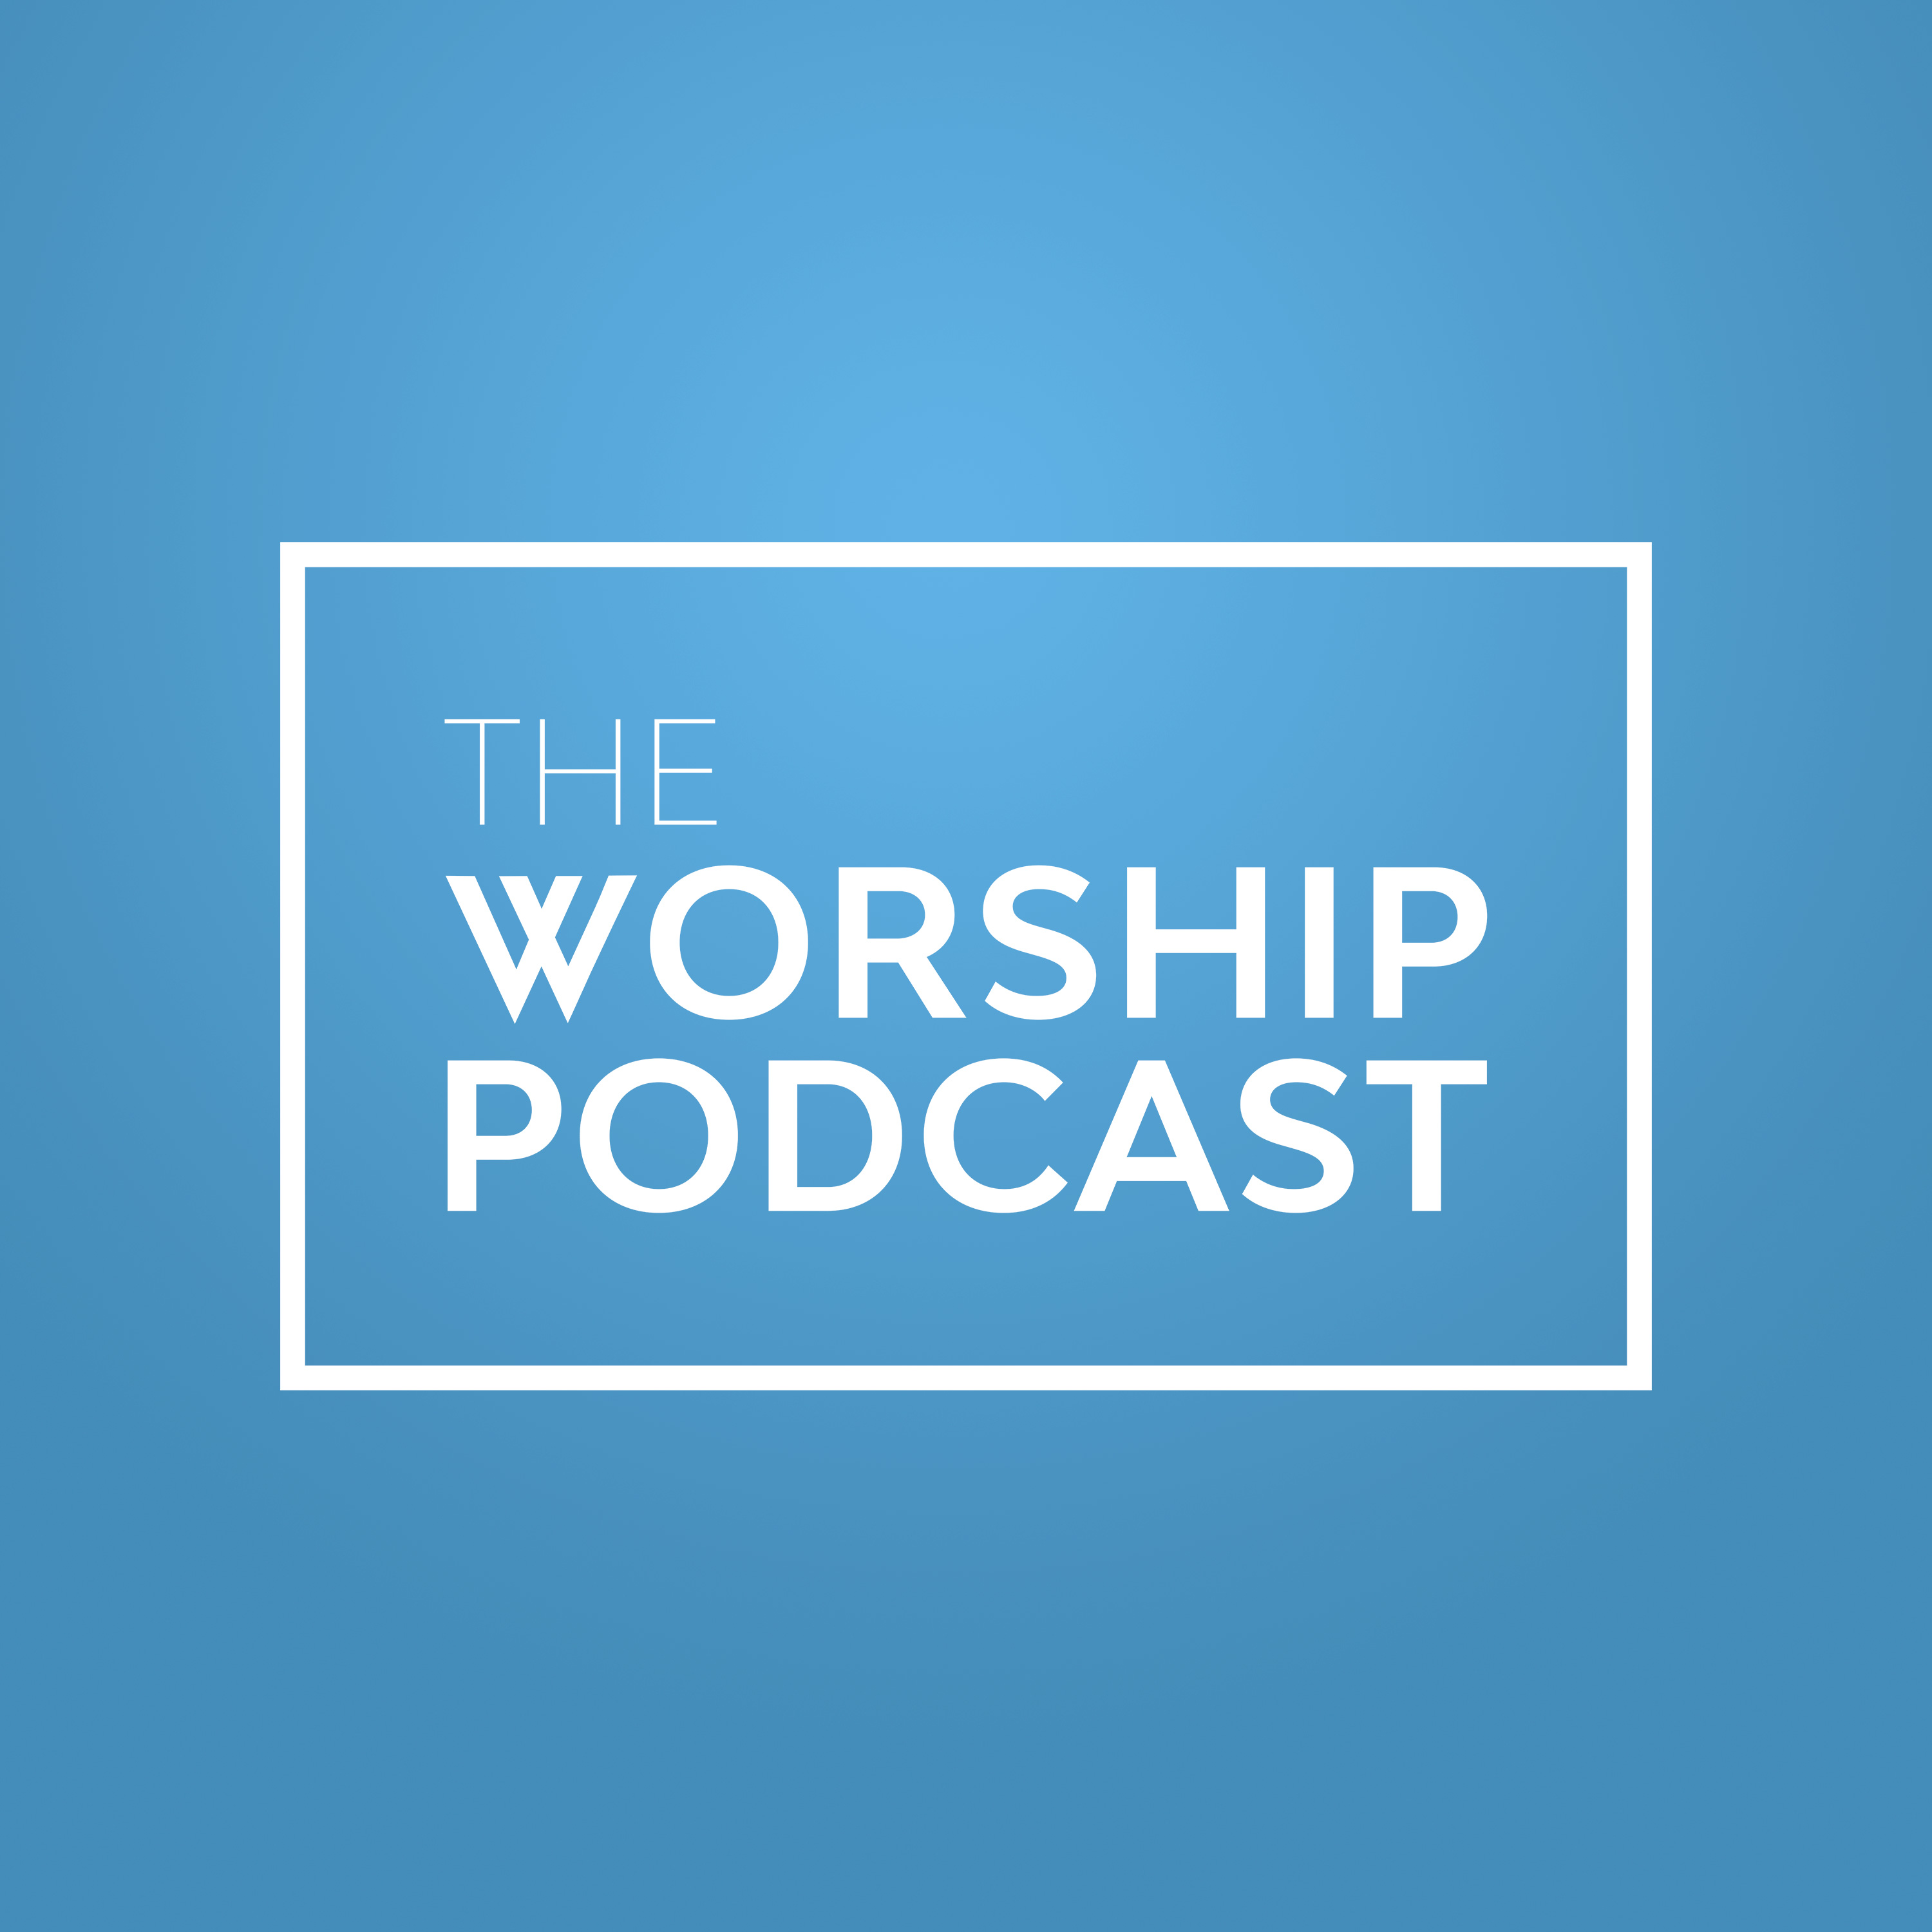 The Worship Podcast show art